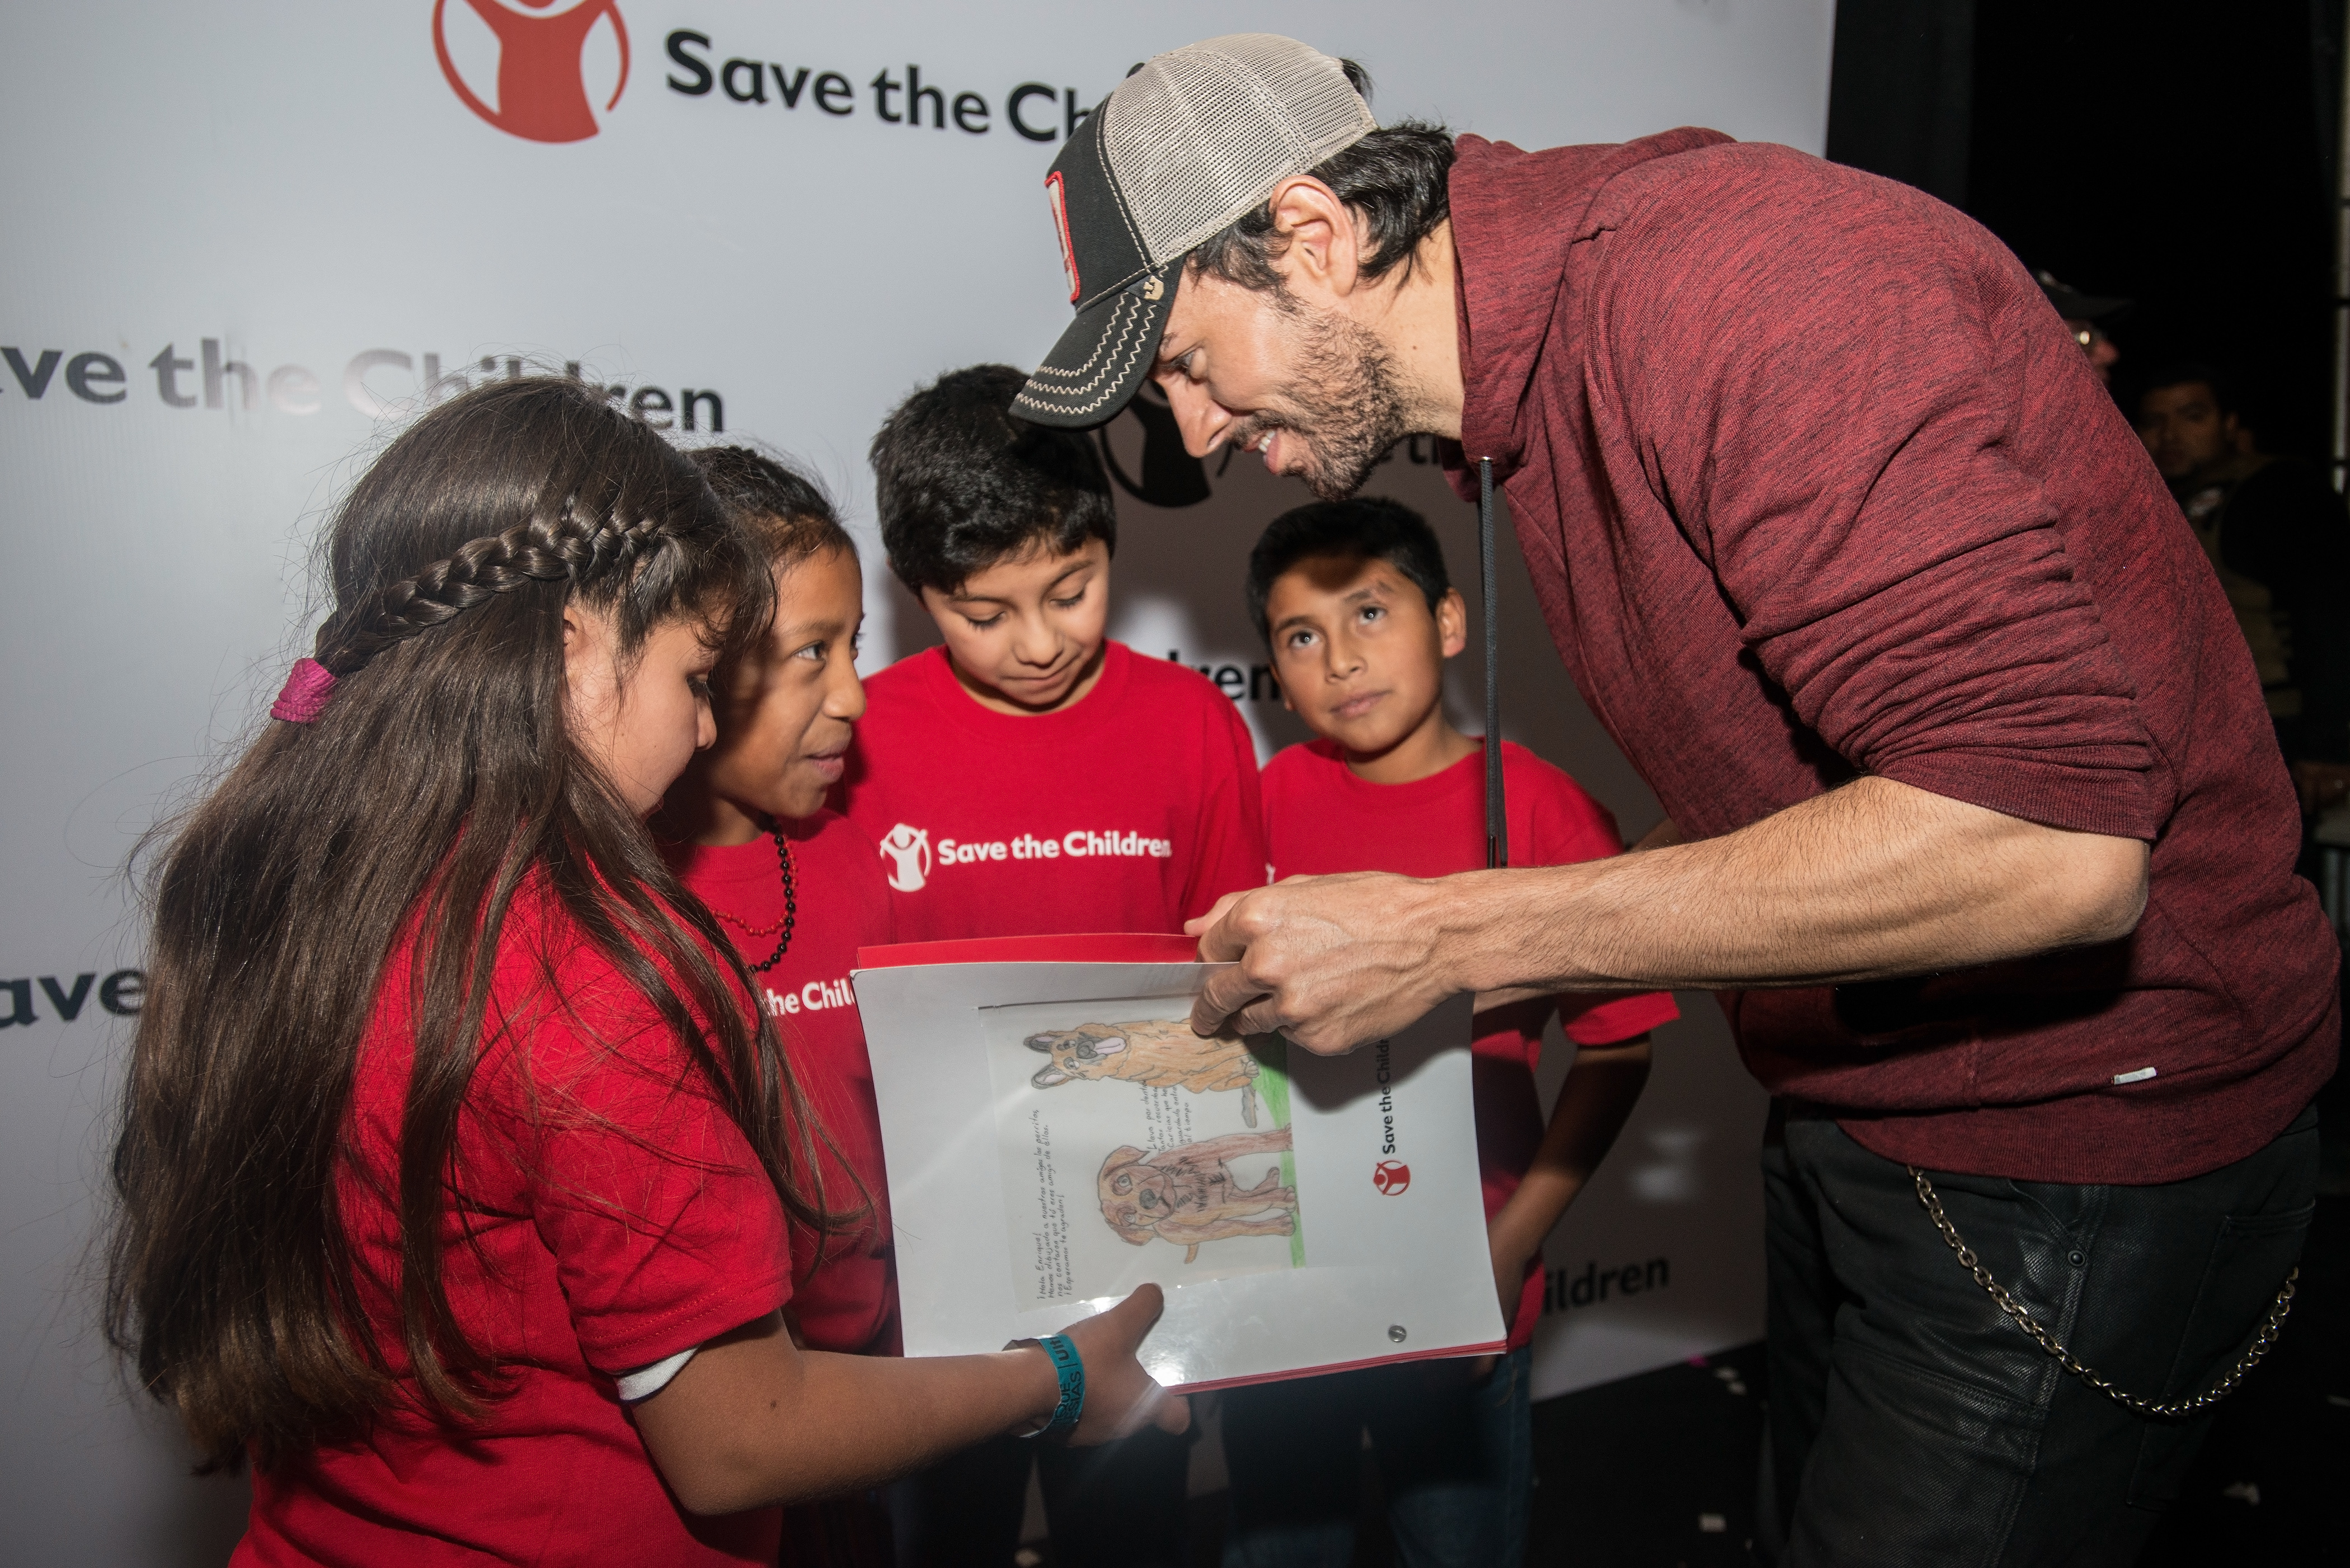 Photos are Embargoed until Tuesday December 13th, 2016: International pop star Enrique Iglesias talks with, from left, Henely, Juana, Gerson and Julio, before his Dec. 9, 2016, concert in Guatemala City, Guatemala. The kids, who all participate in Save the Children's Literacy Boost program in Guatemala, created a handmade book as a thank you gift for Iglesias, who, through a partnership with Microsoft, has donated $200,000 in software to Save the Children to strengthen its literacy programming for elementary school-age children in El Salvador, Guatemala and Peru.